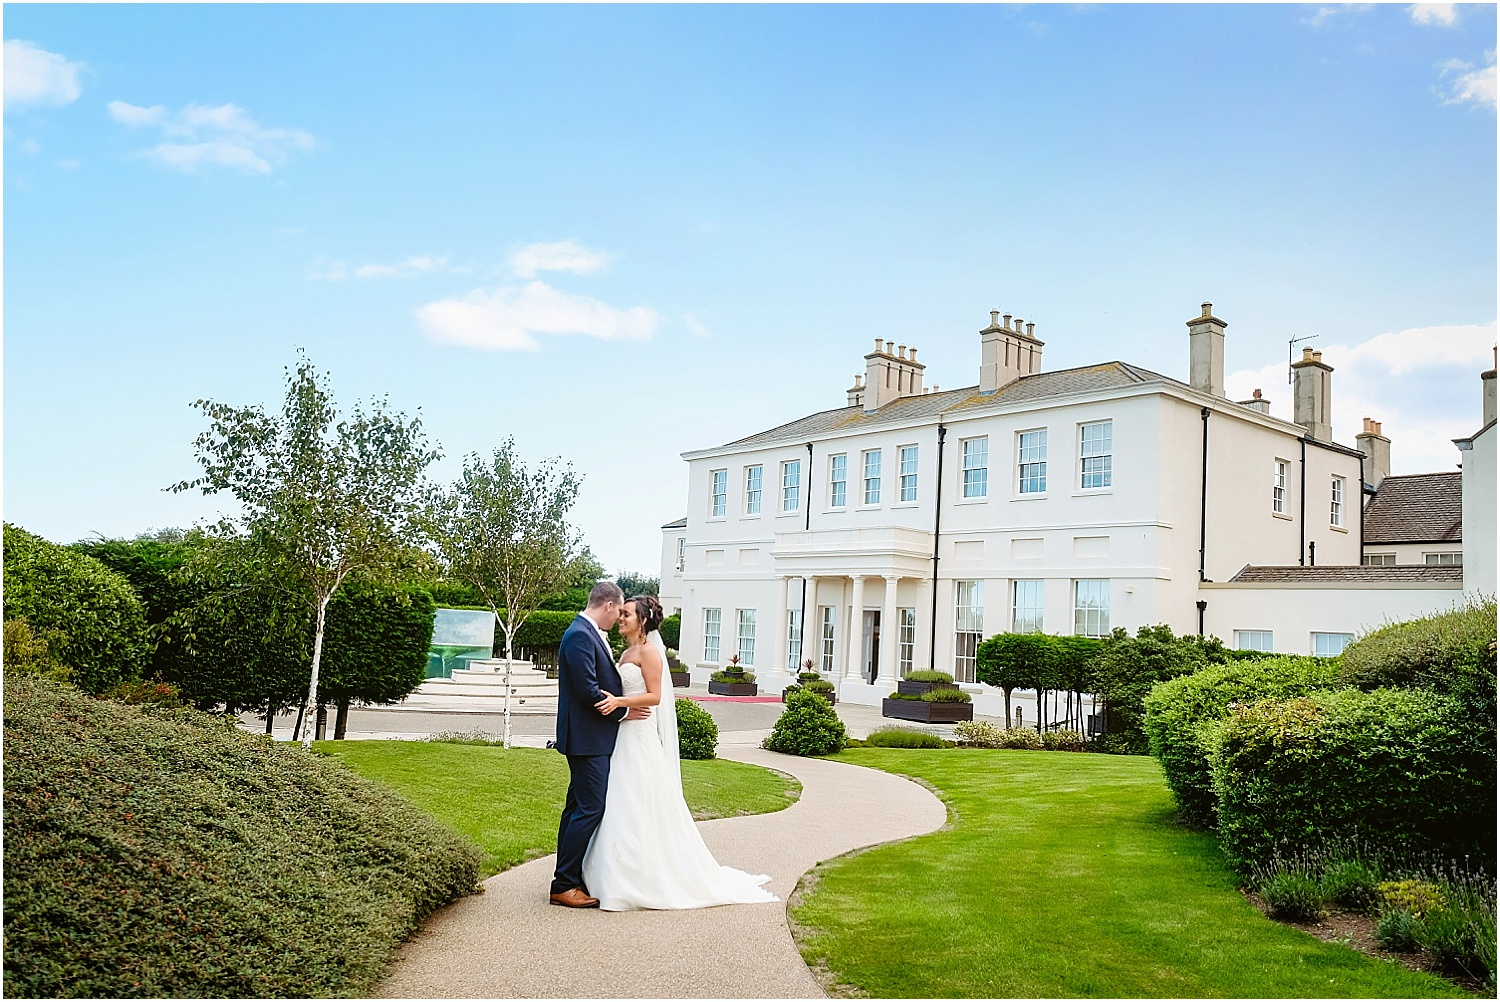 Wedding photography at Seaham Hall by www.2tonephotography.co.uk